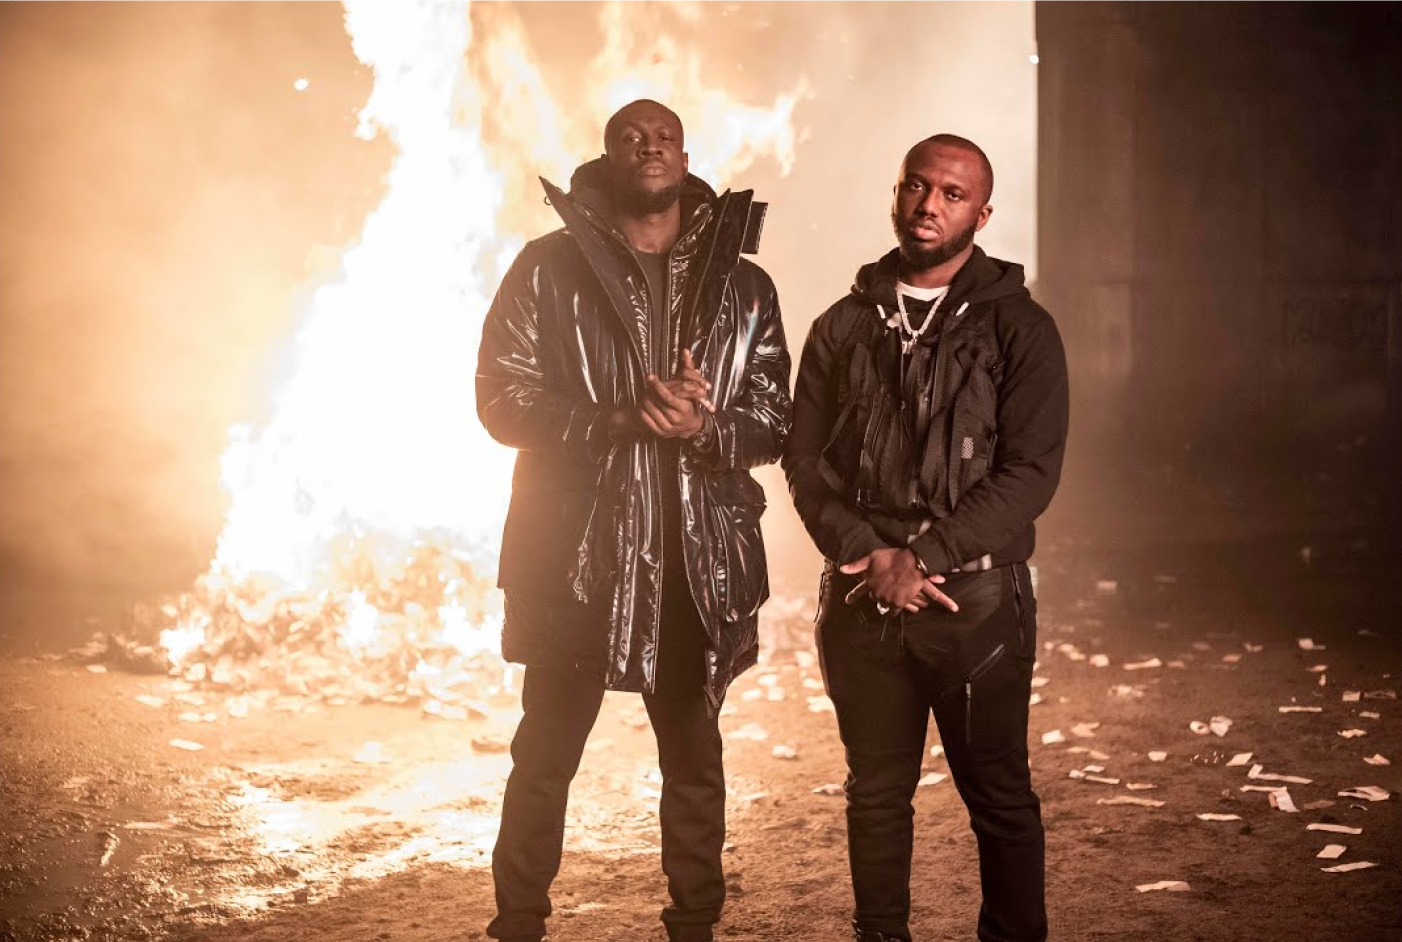 Stormzy shares fiery video for Headie One collaboration 'Audacity'